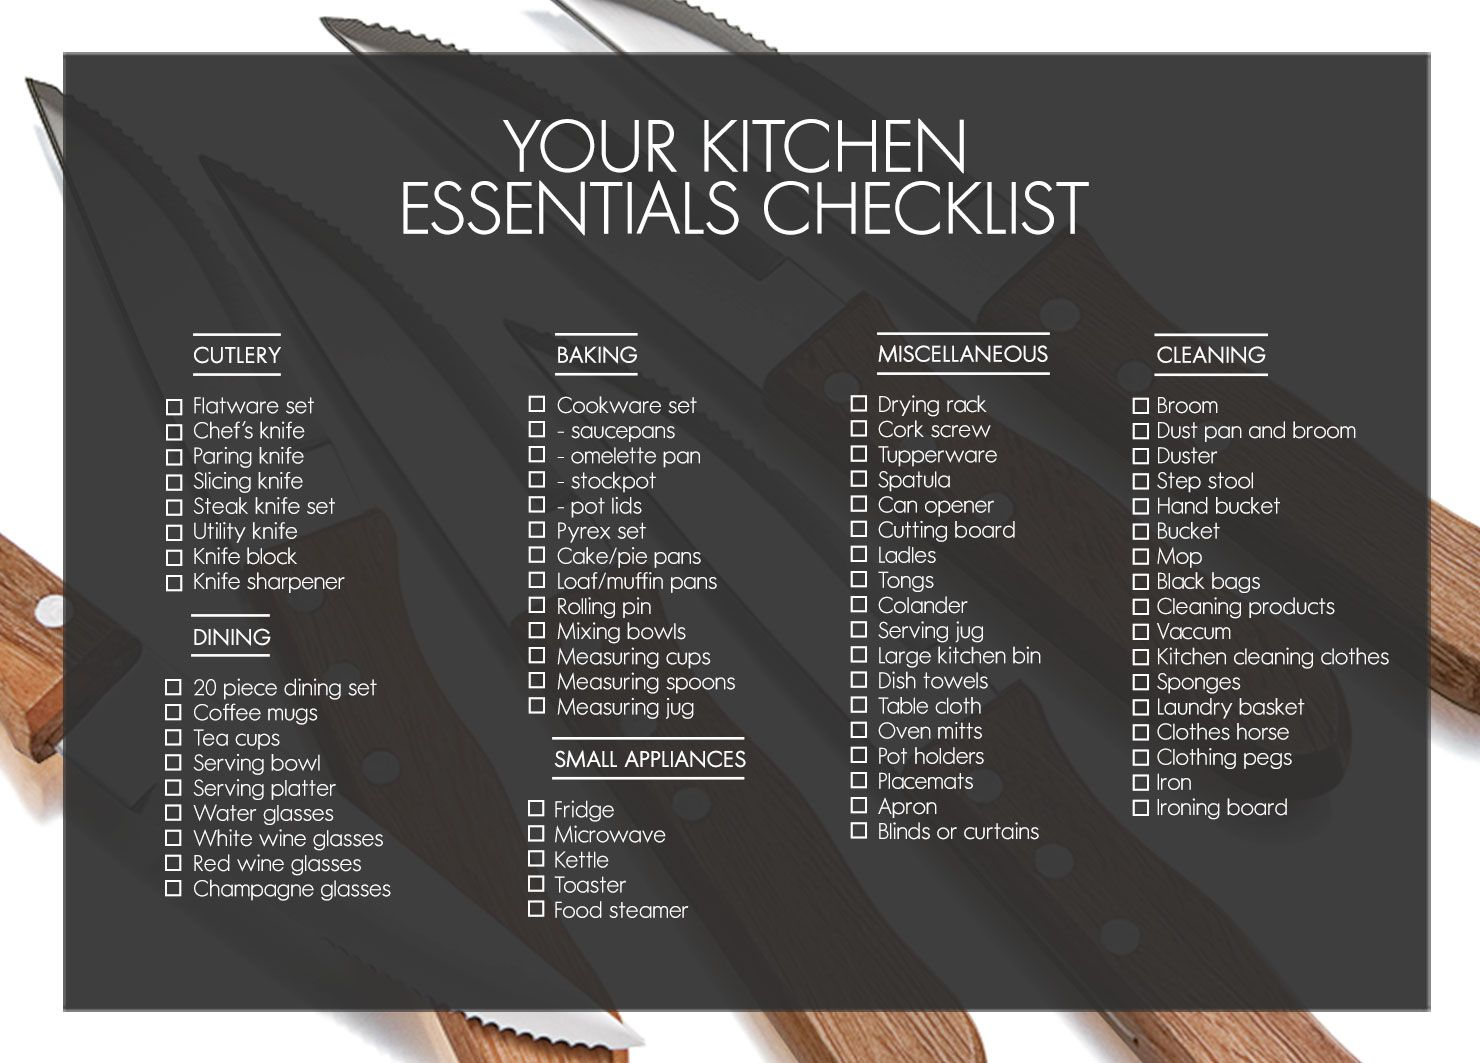 Essentials For A Kitchen 1 Checklist